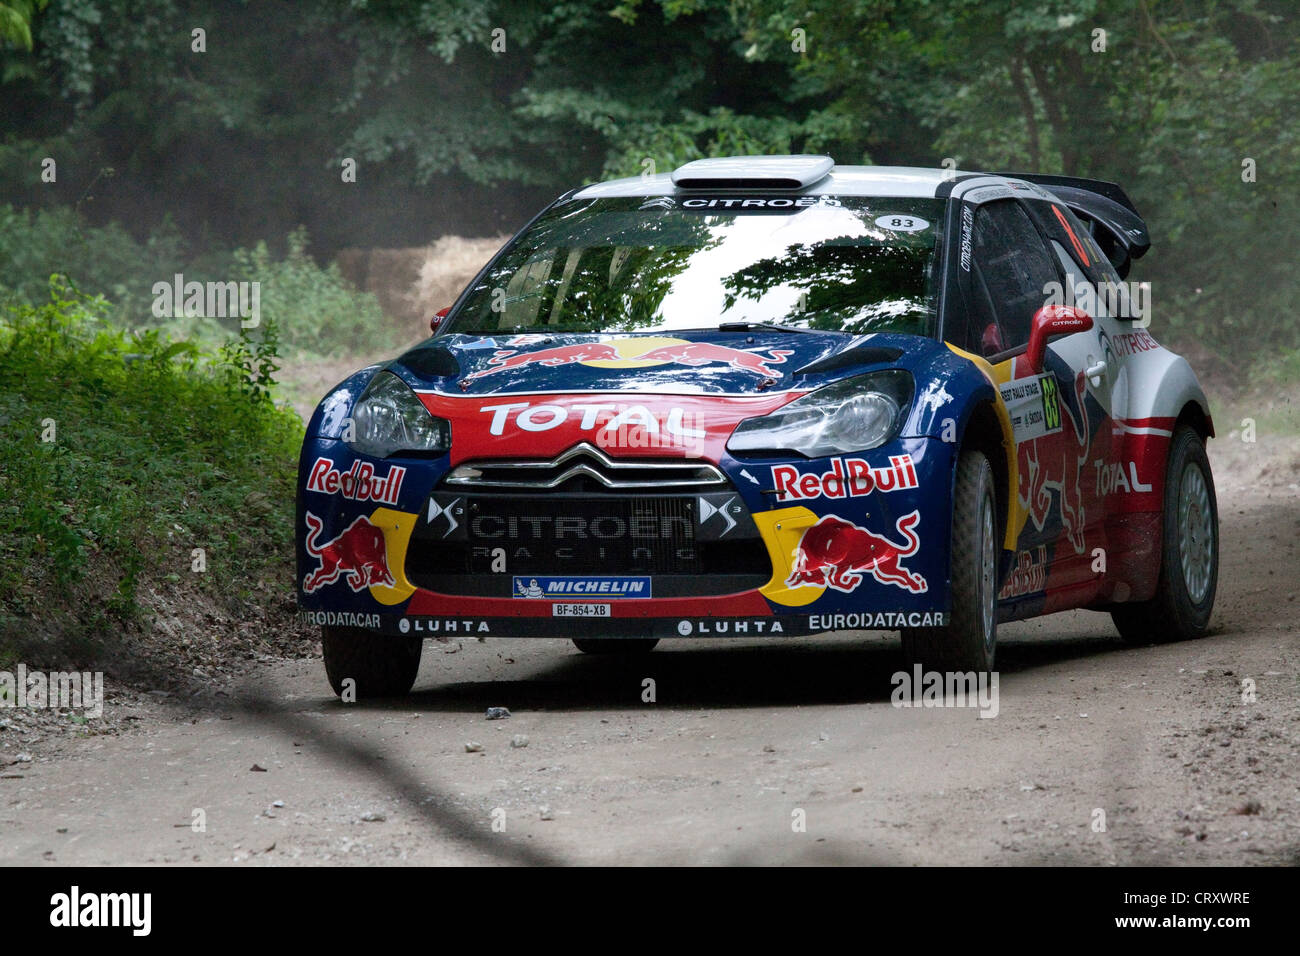 Citroen Ds3 Rally Car Goodwood Festival Of Speed 2012 Stock